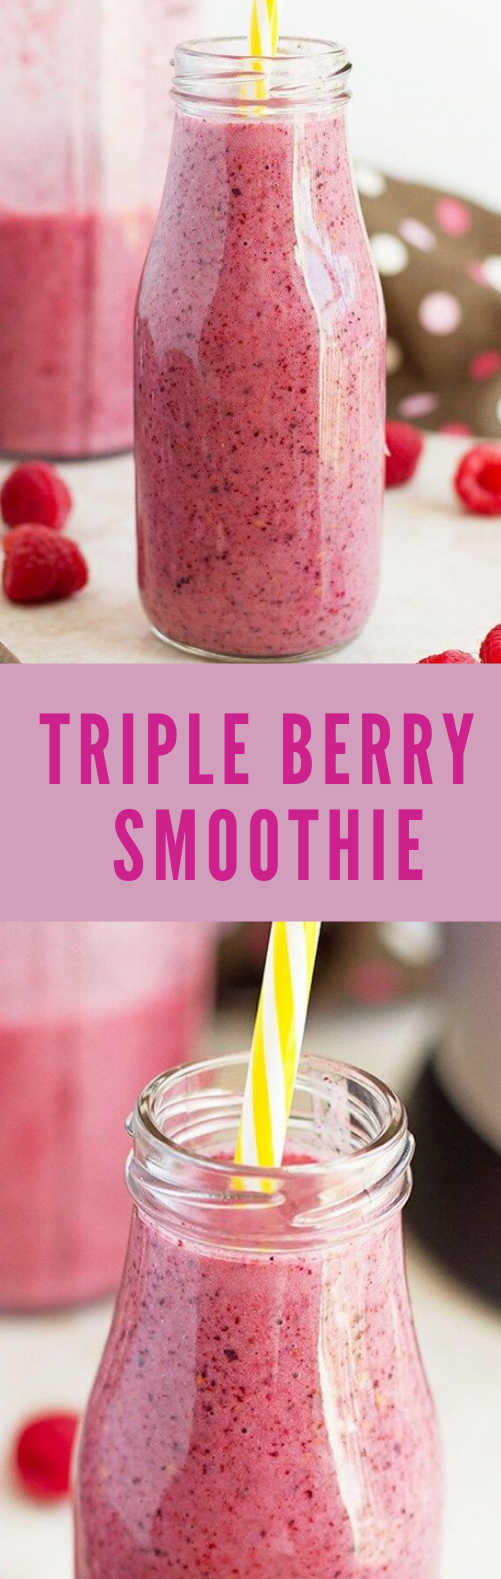 TRIPLE BERRY SMOOTHIE #smoothie #drink